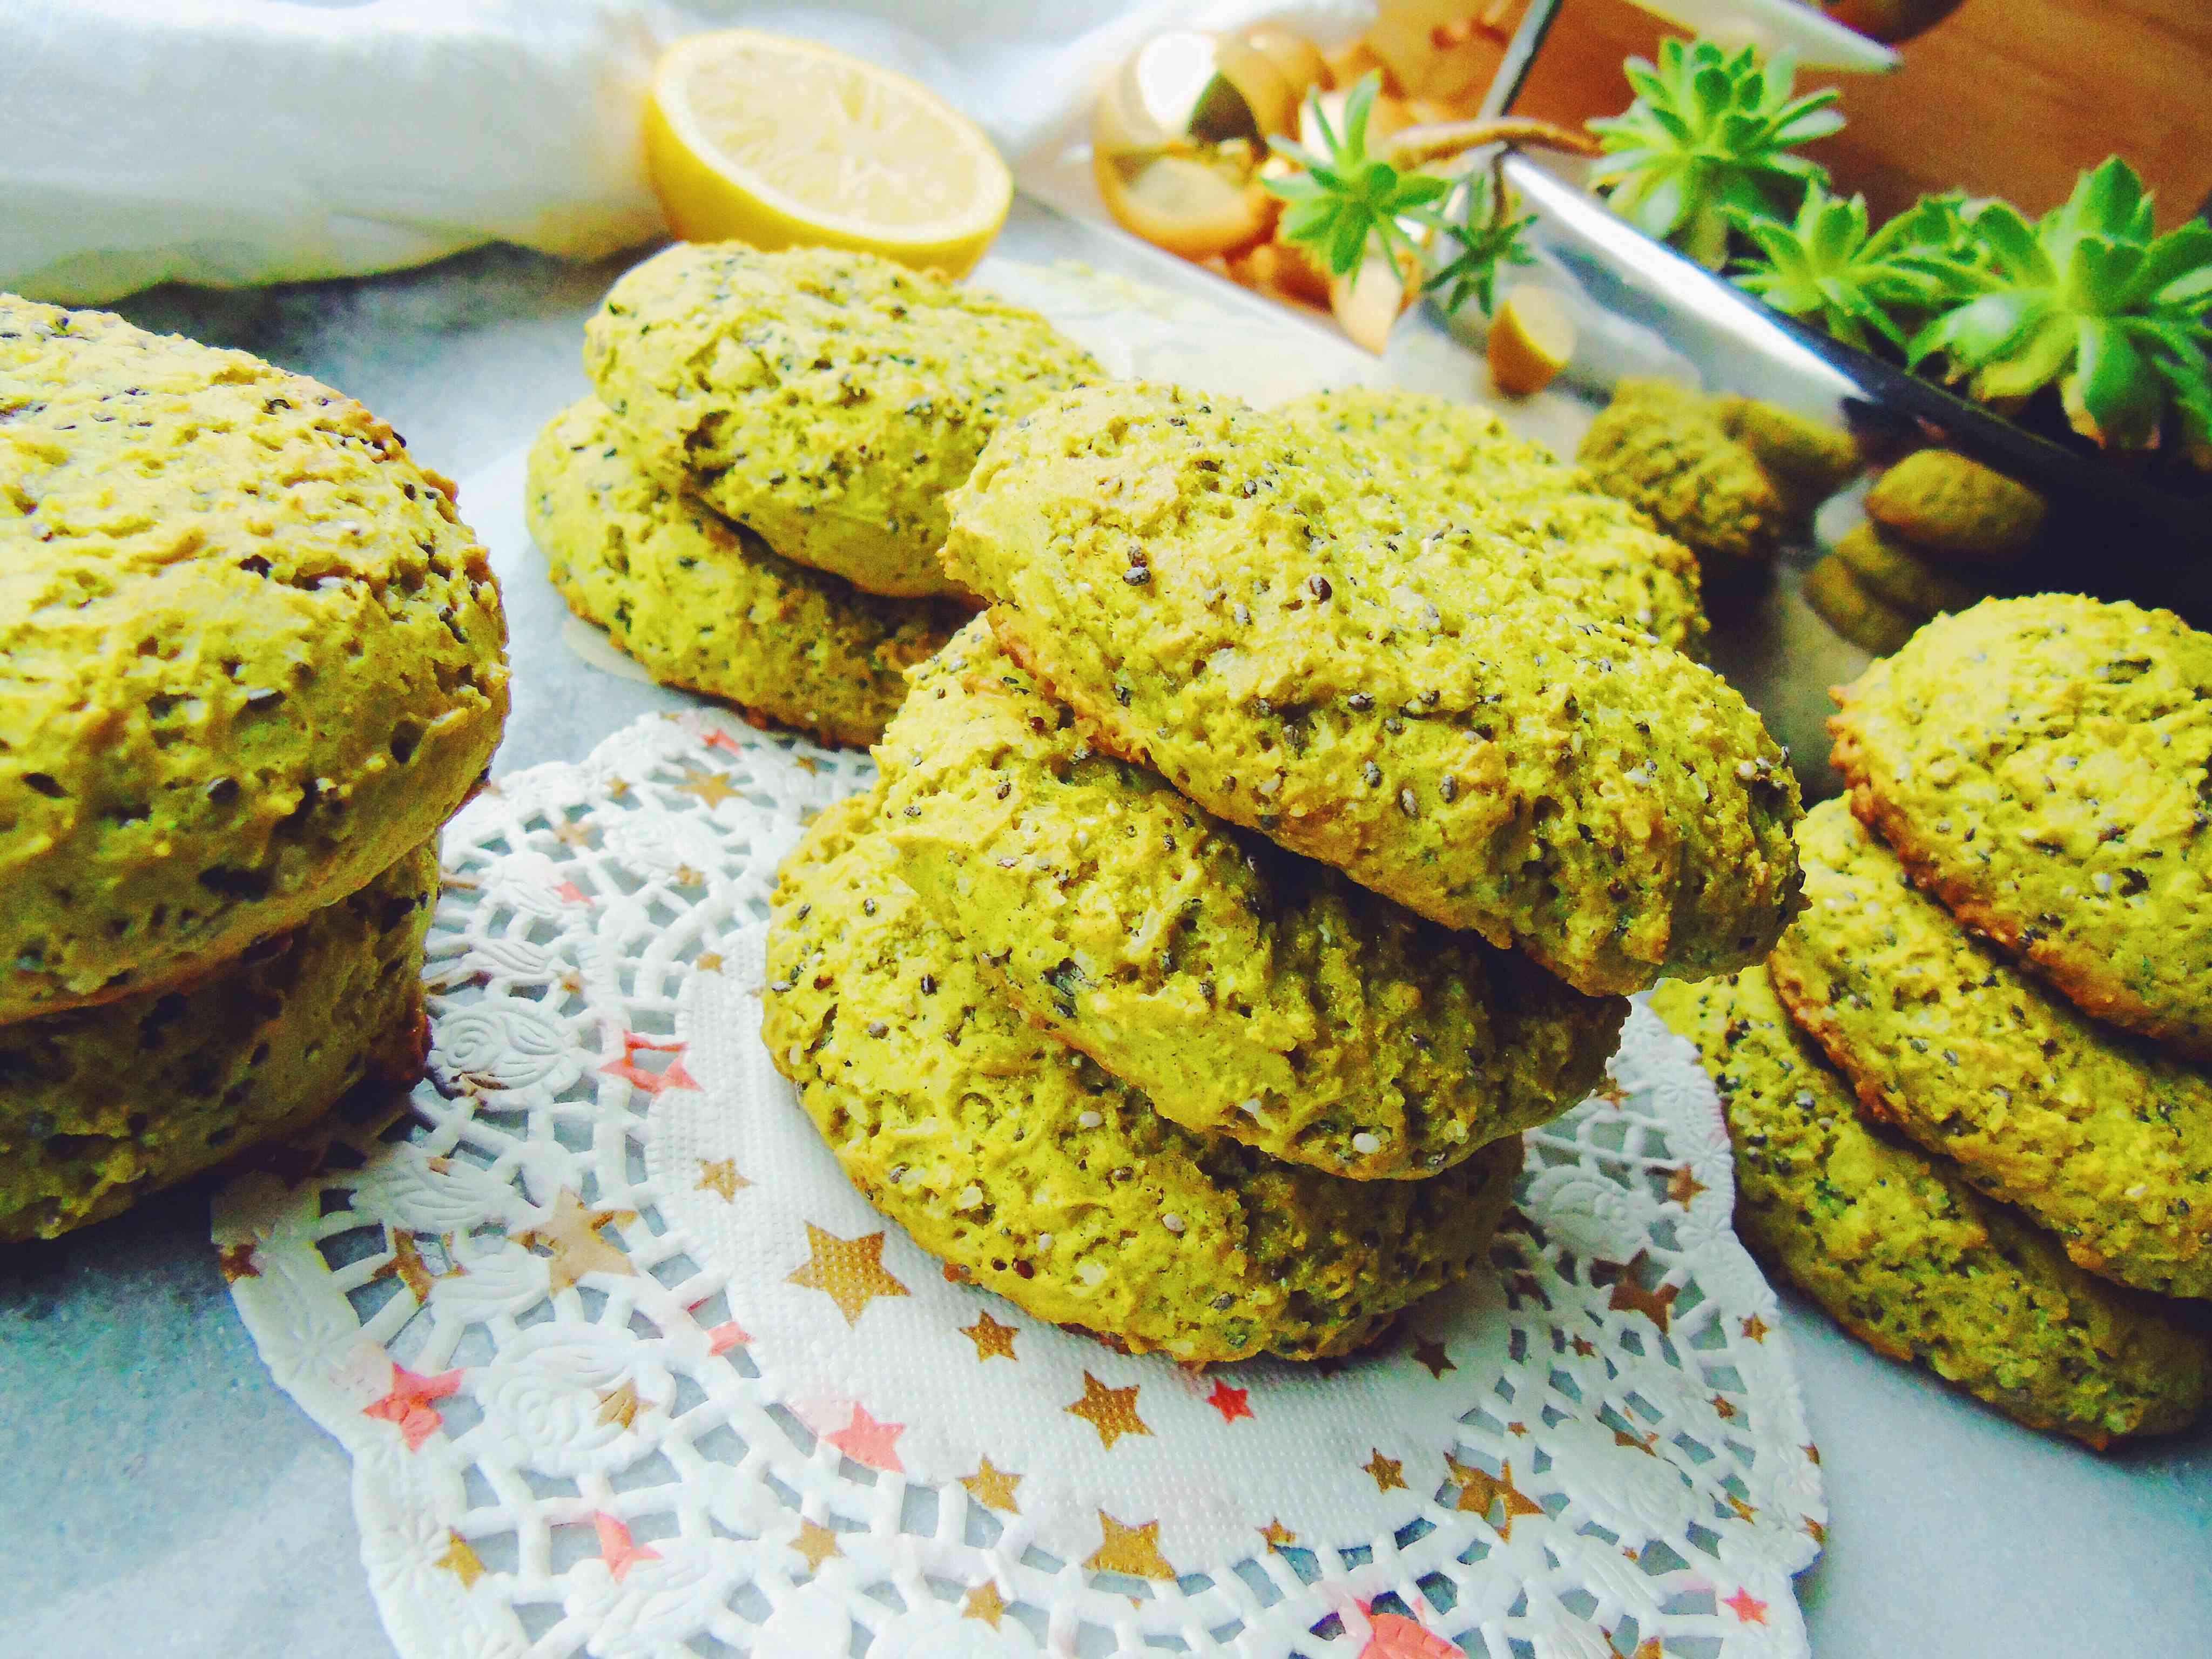 Lemon/Chia Seed Cookies